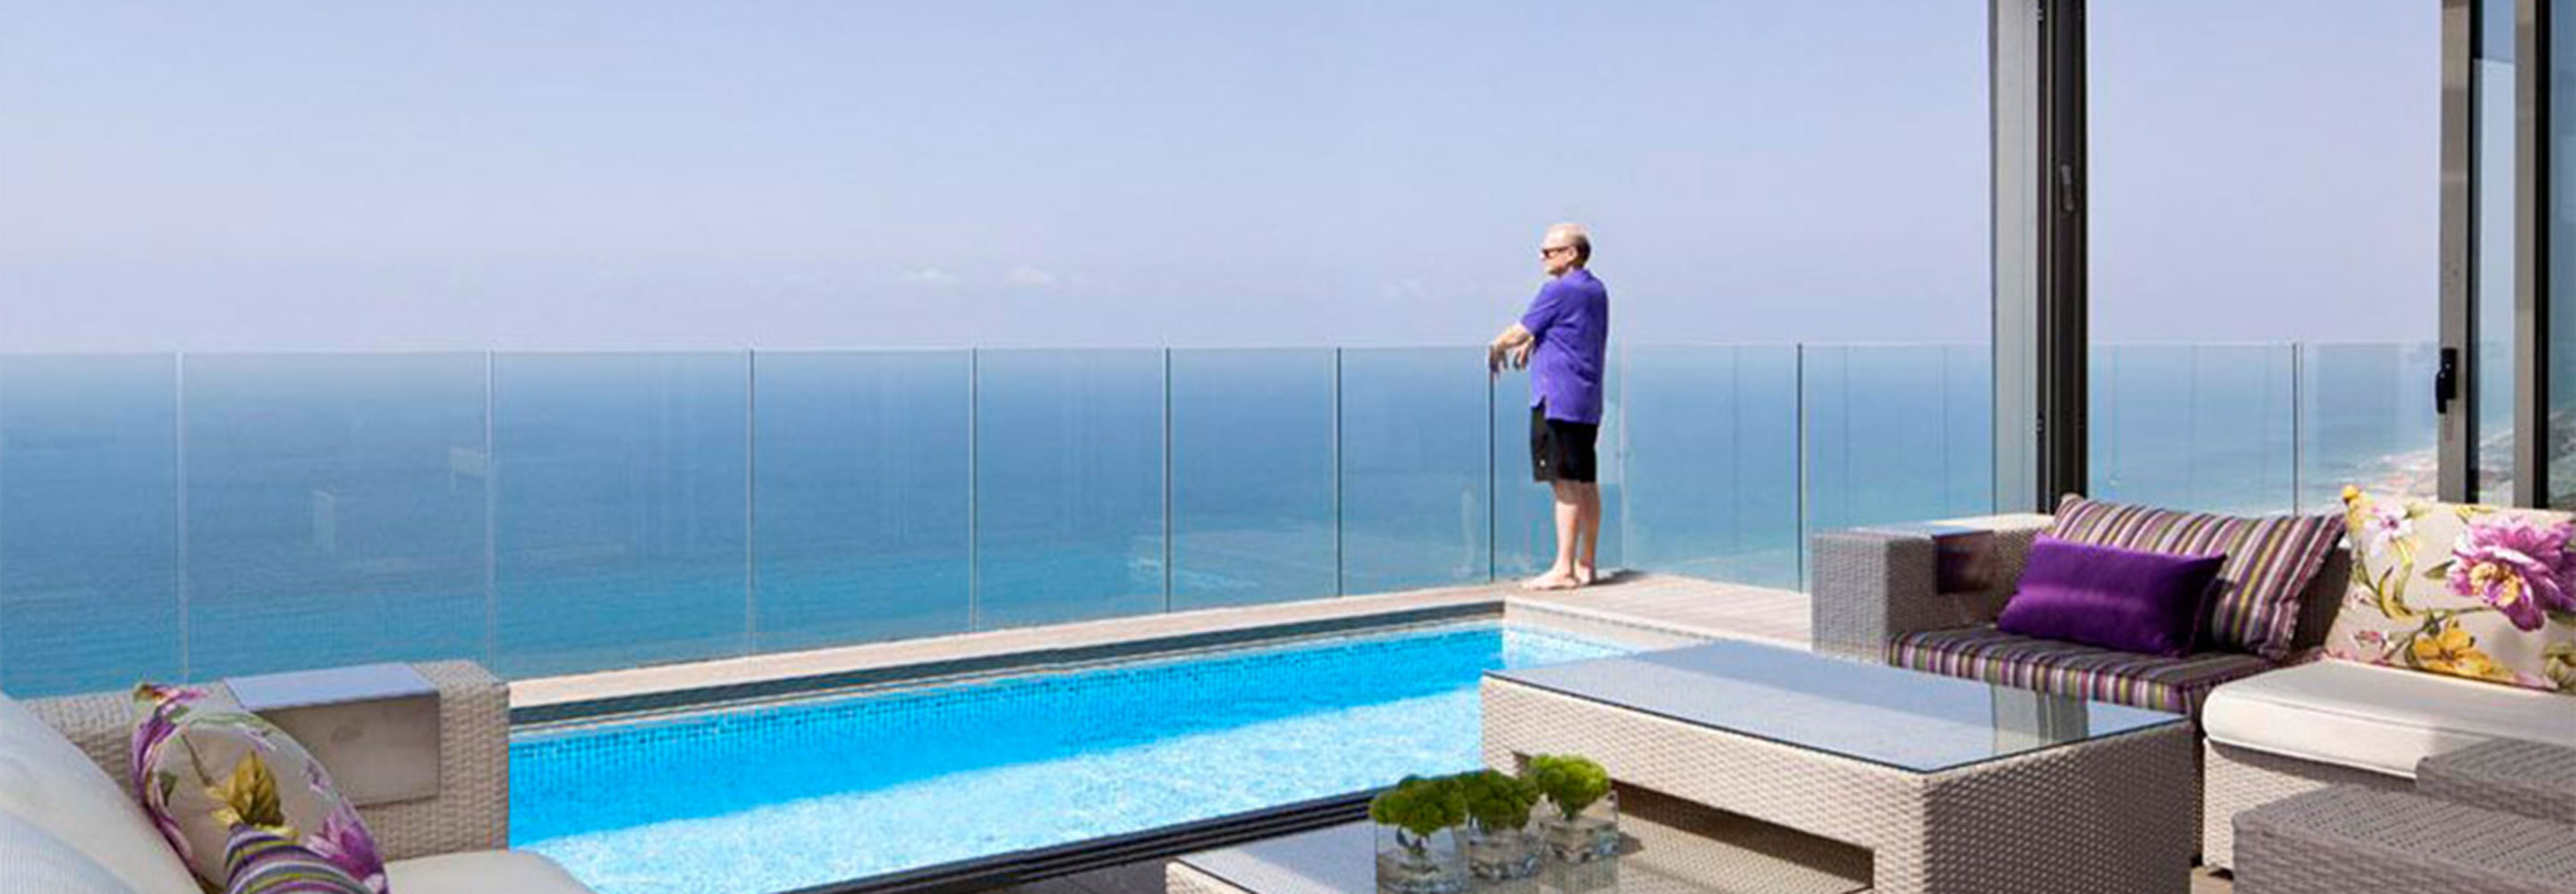 Seaside Glass Railing with Swimming pool Villa